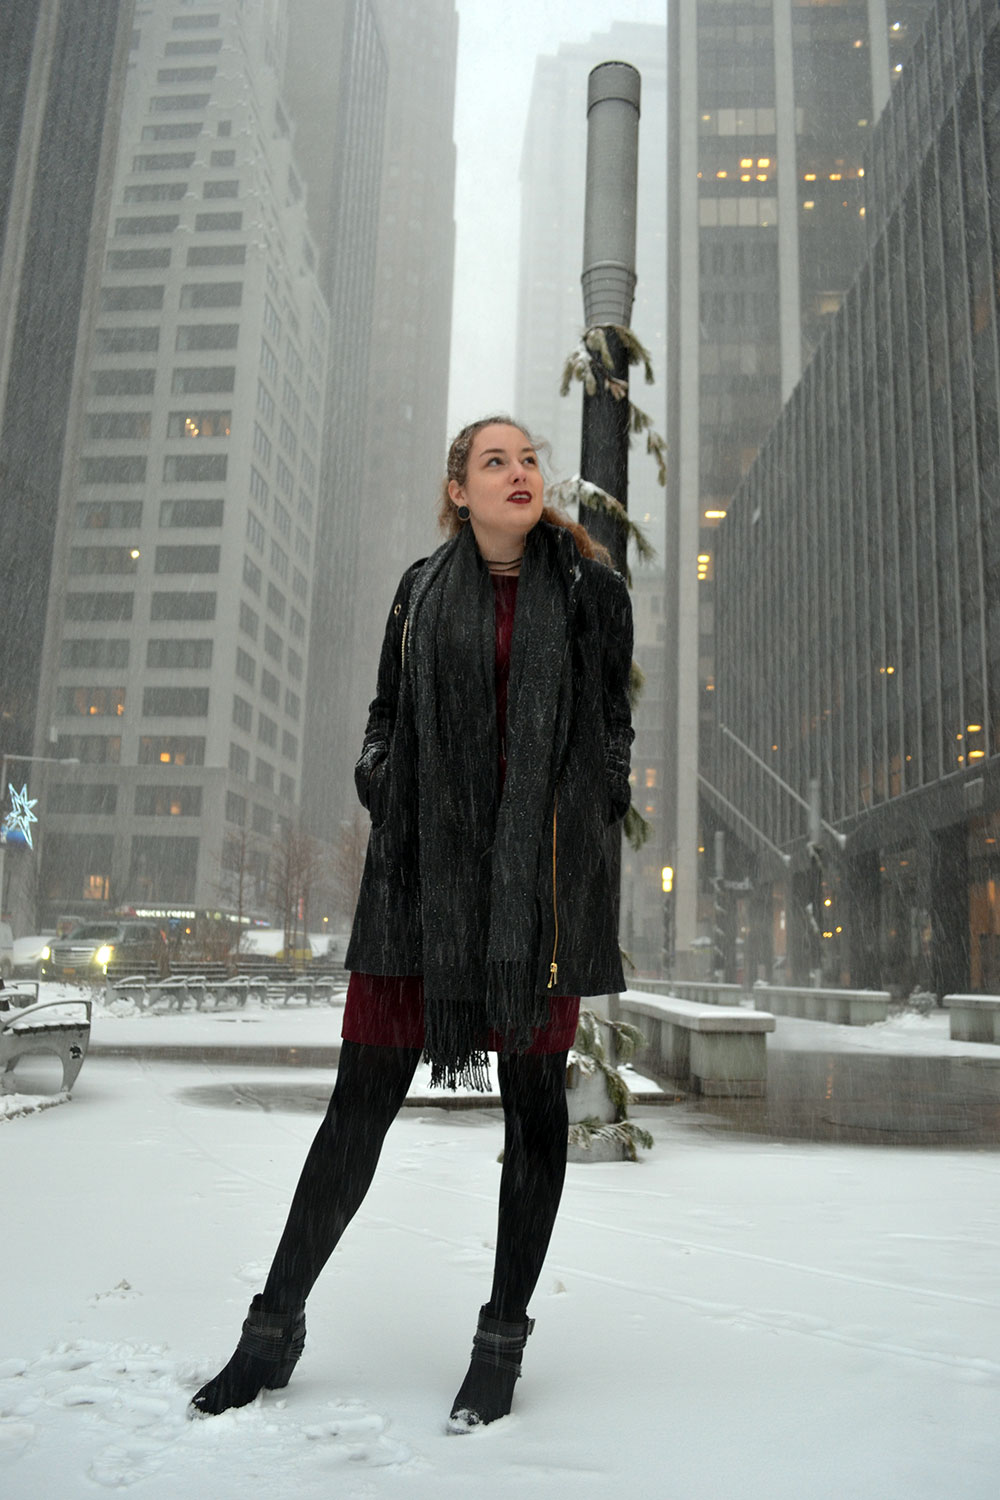 Outfit: Wearing Dresses in Winter - Winterdress 4